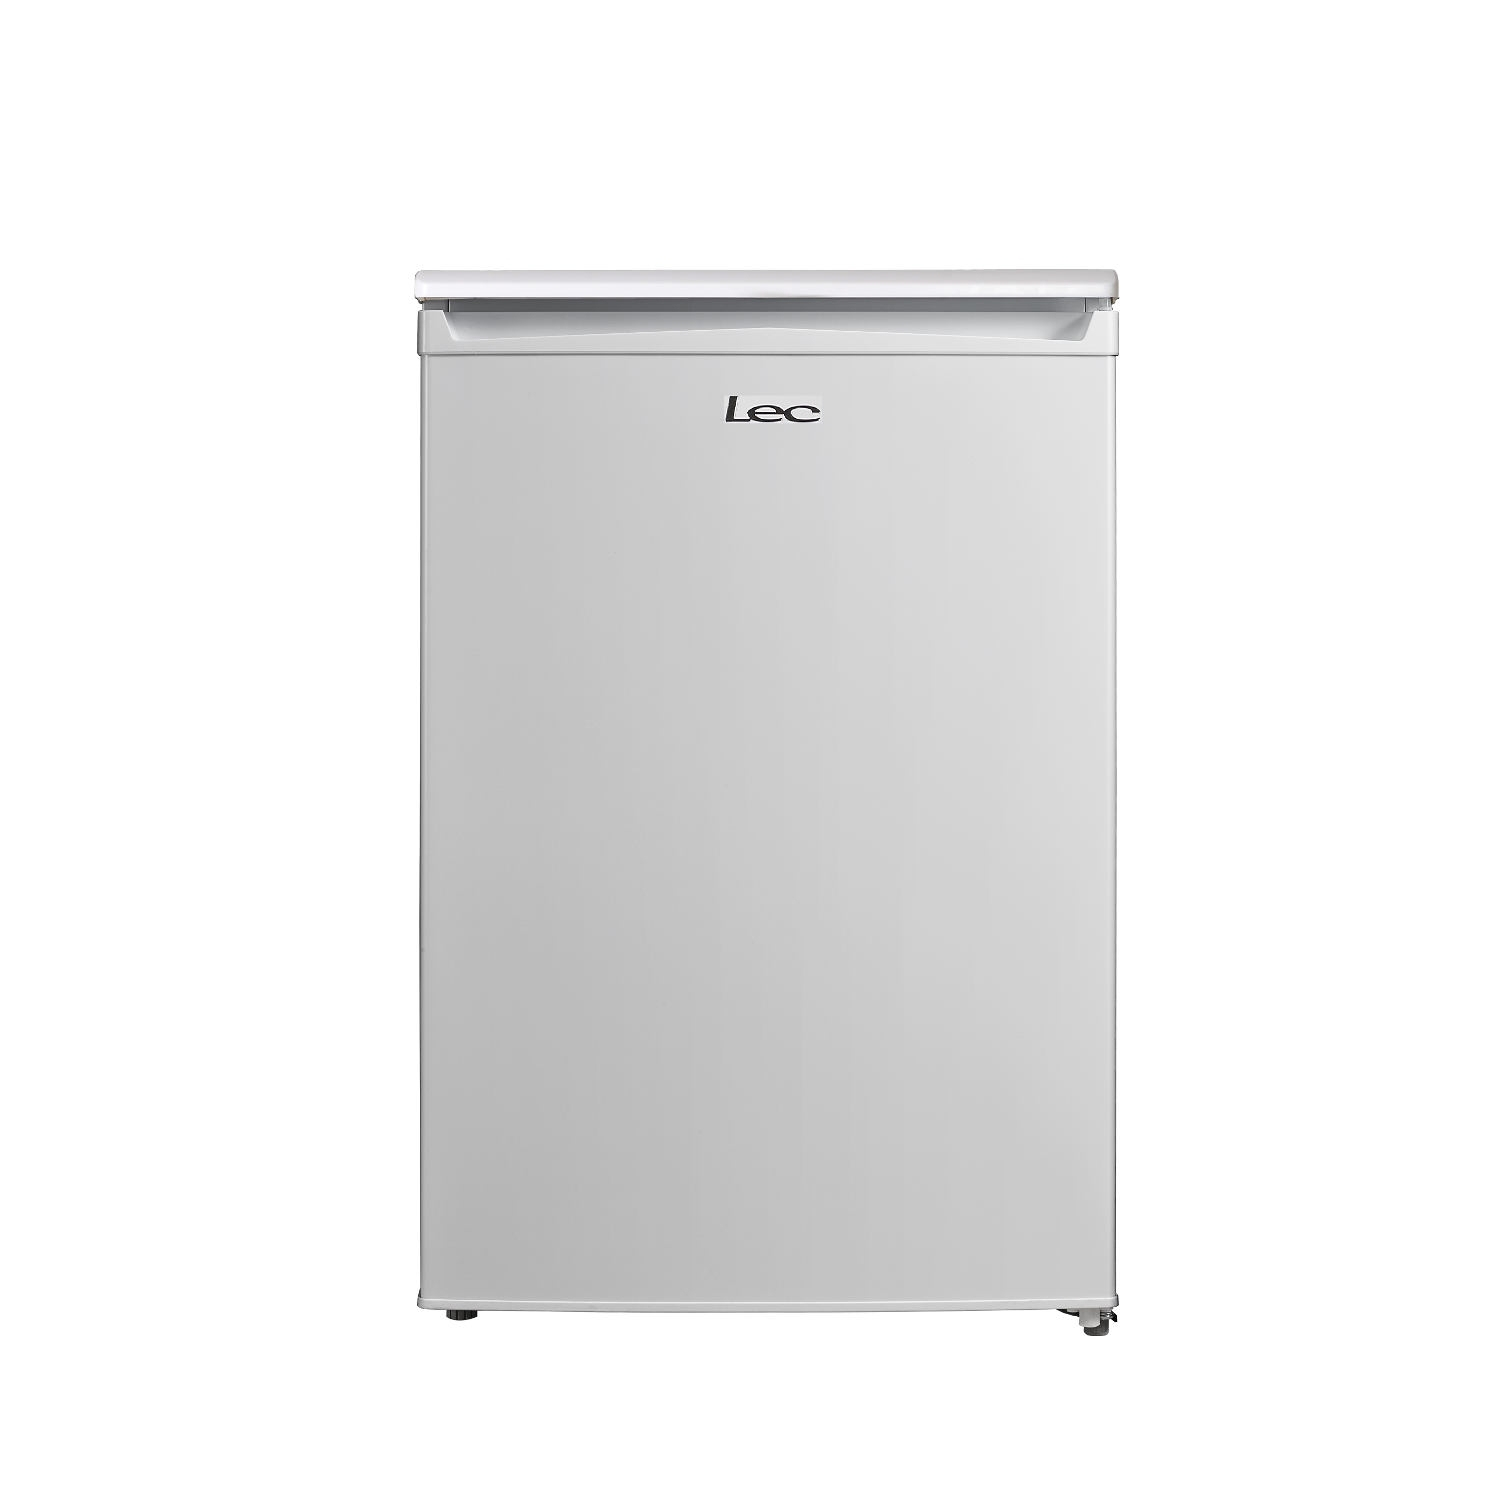 Lec 55cm Undercounter Larder Fridge - White - A+ Rated - 2